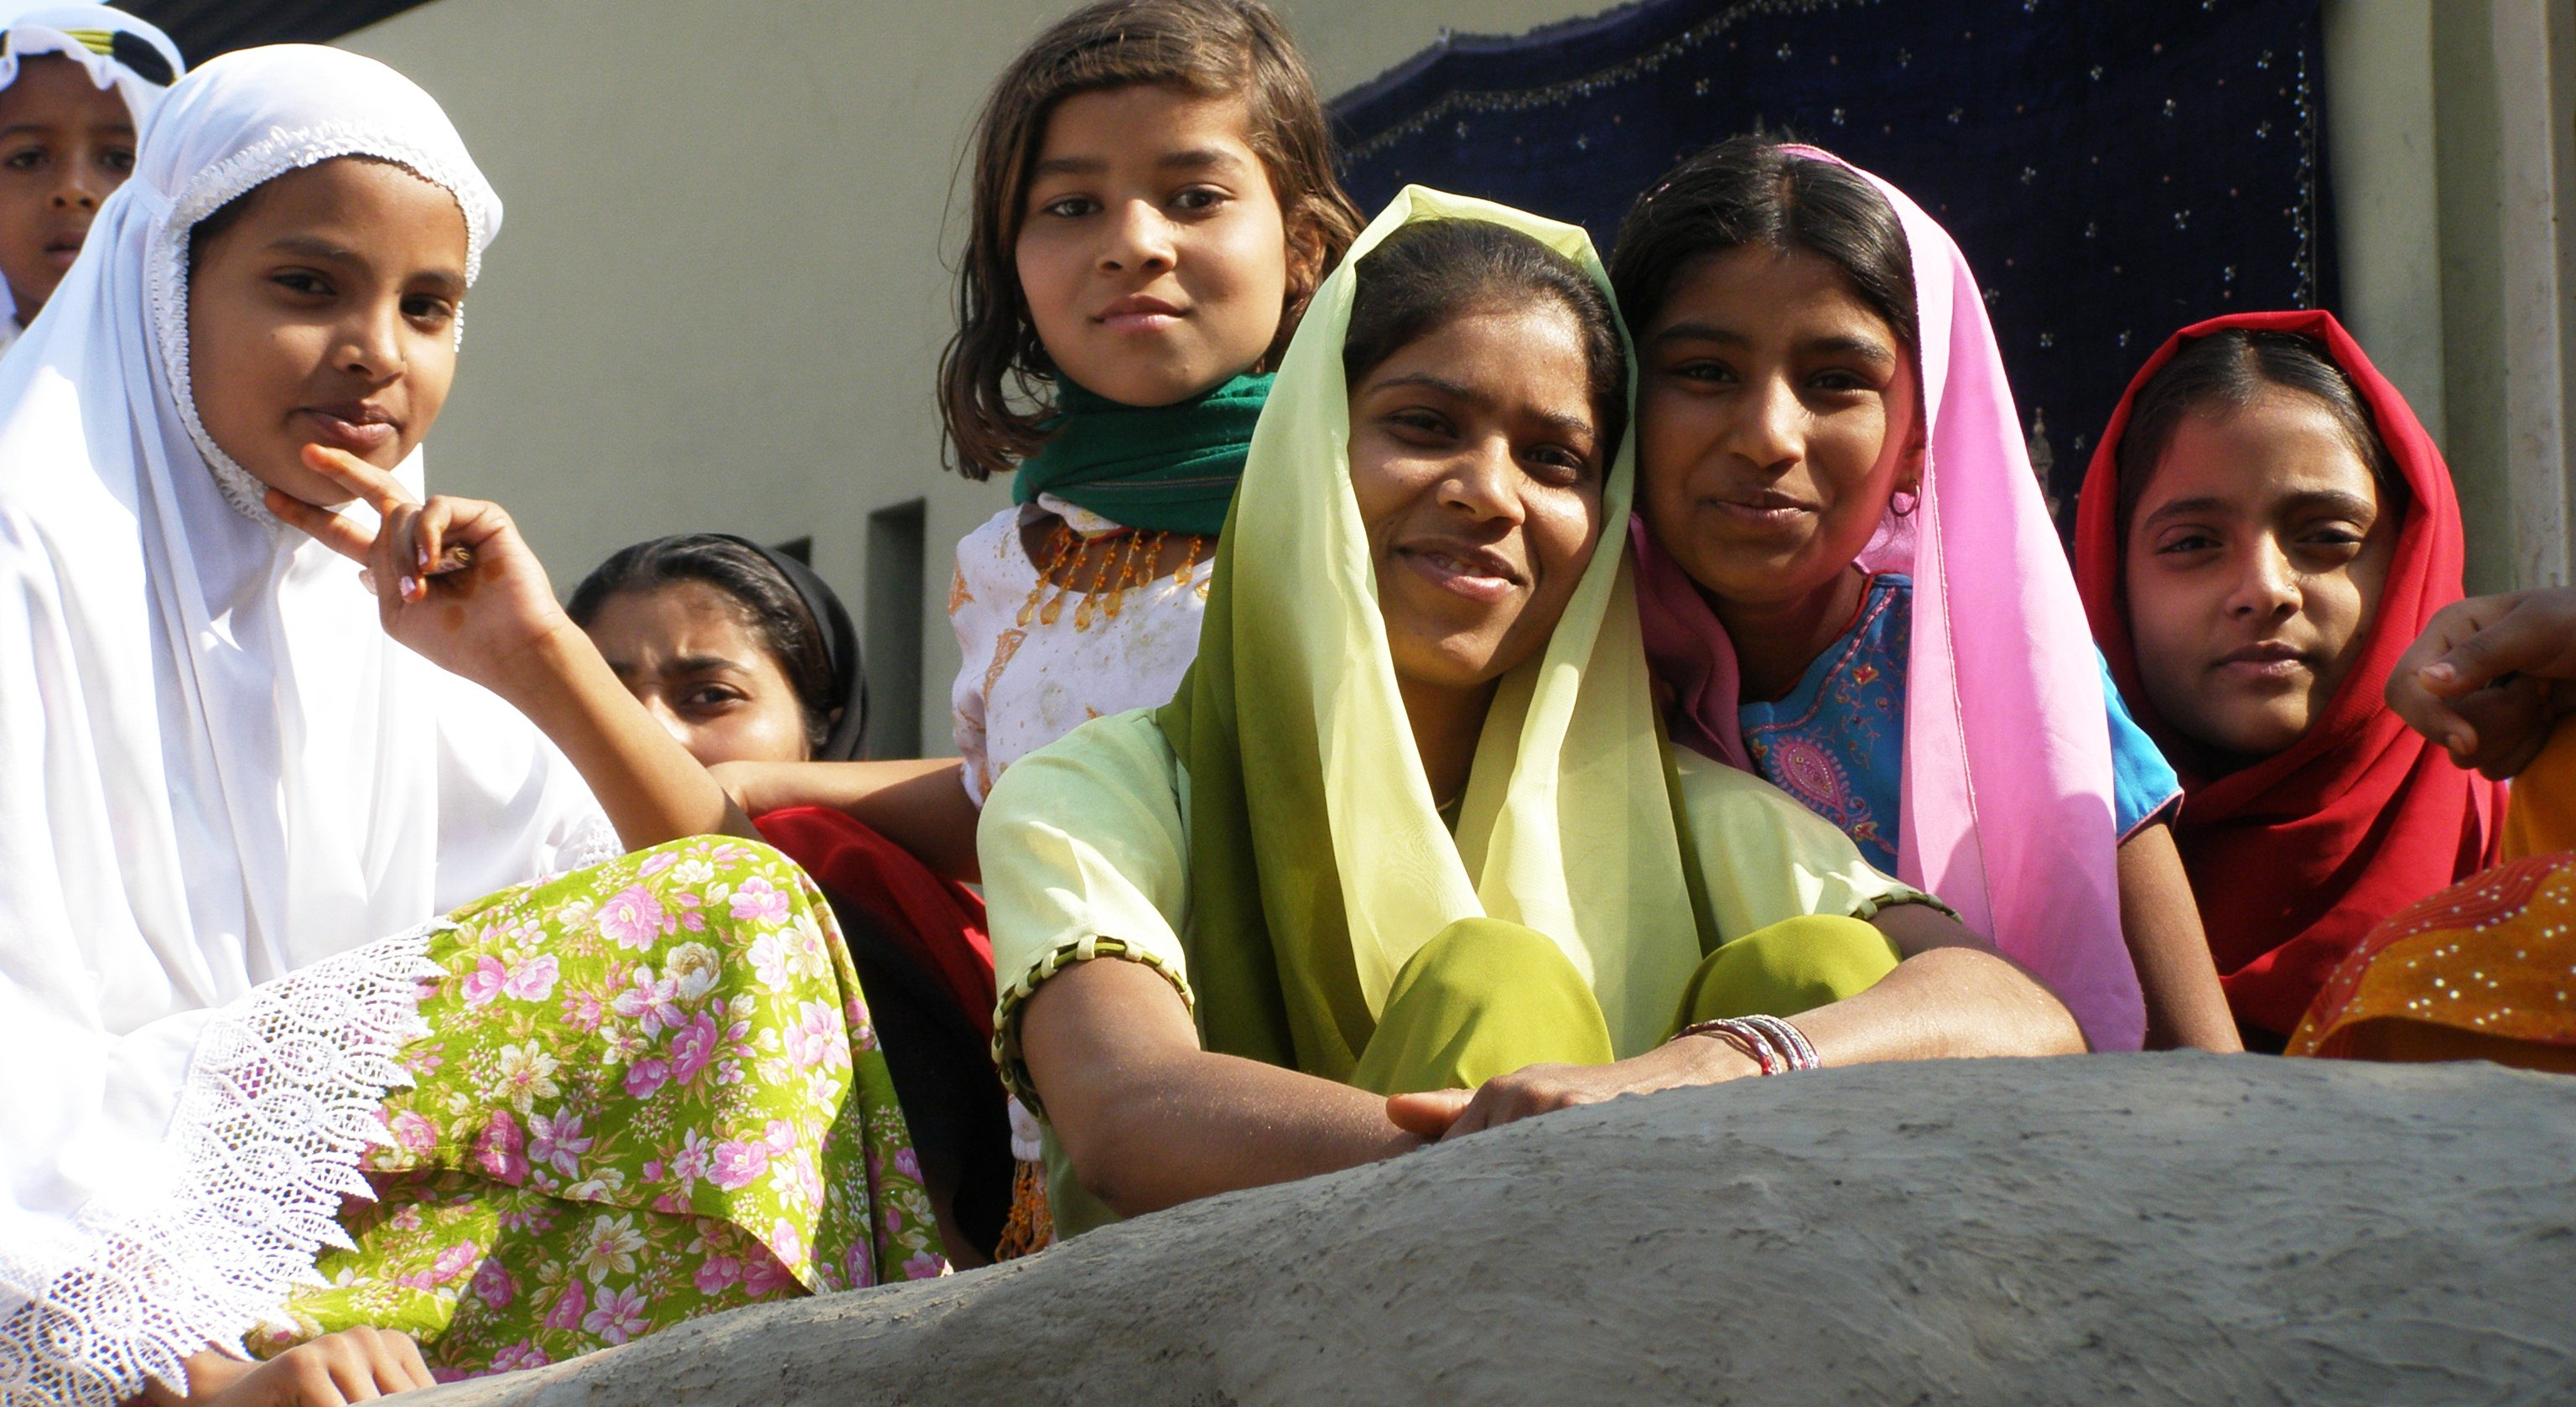 People India People Of India Just Some Of The Reasons I Love The